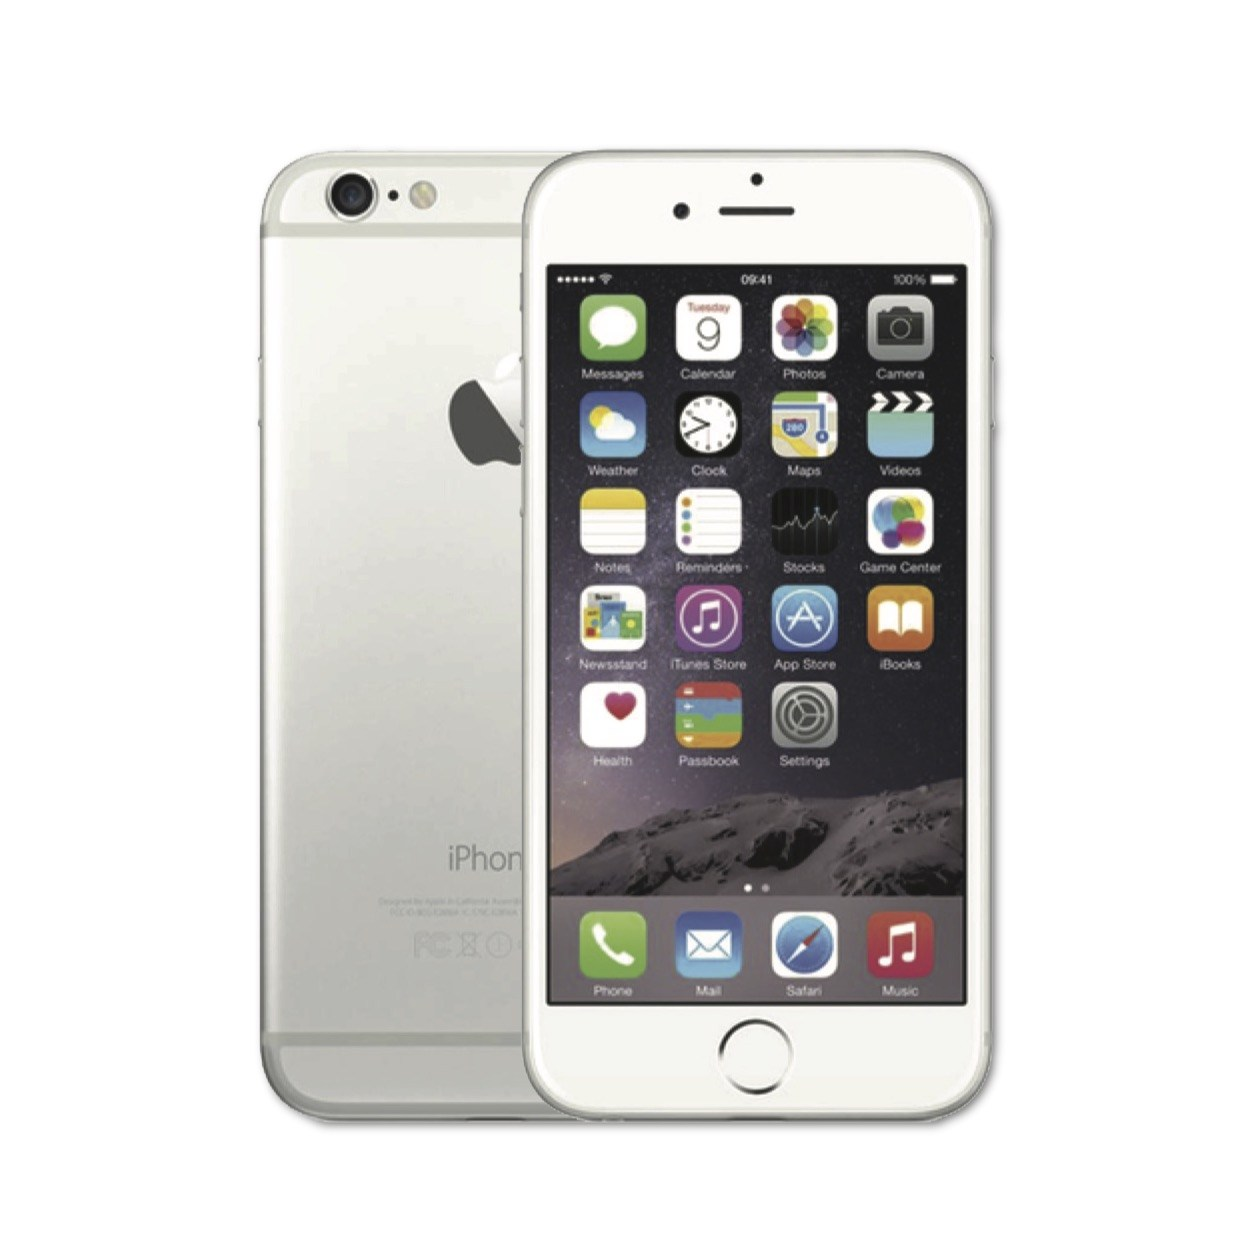 iPhone 6 Silver - trangthienlong.com.vn